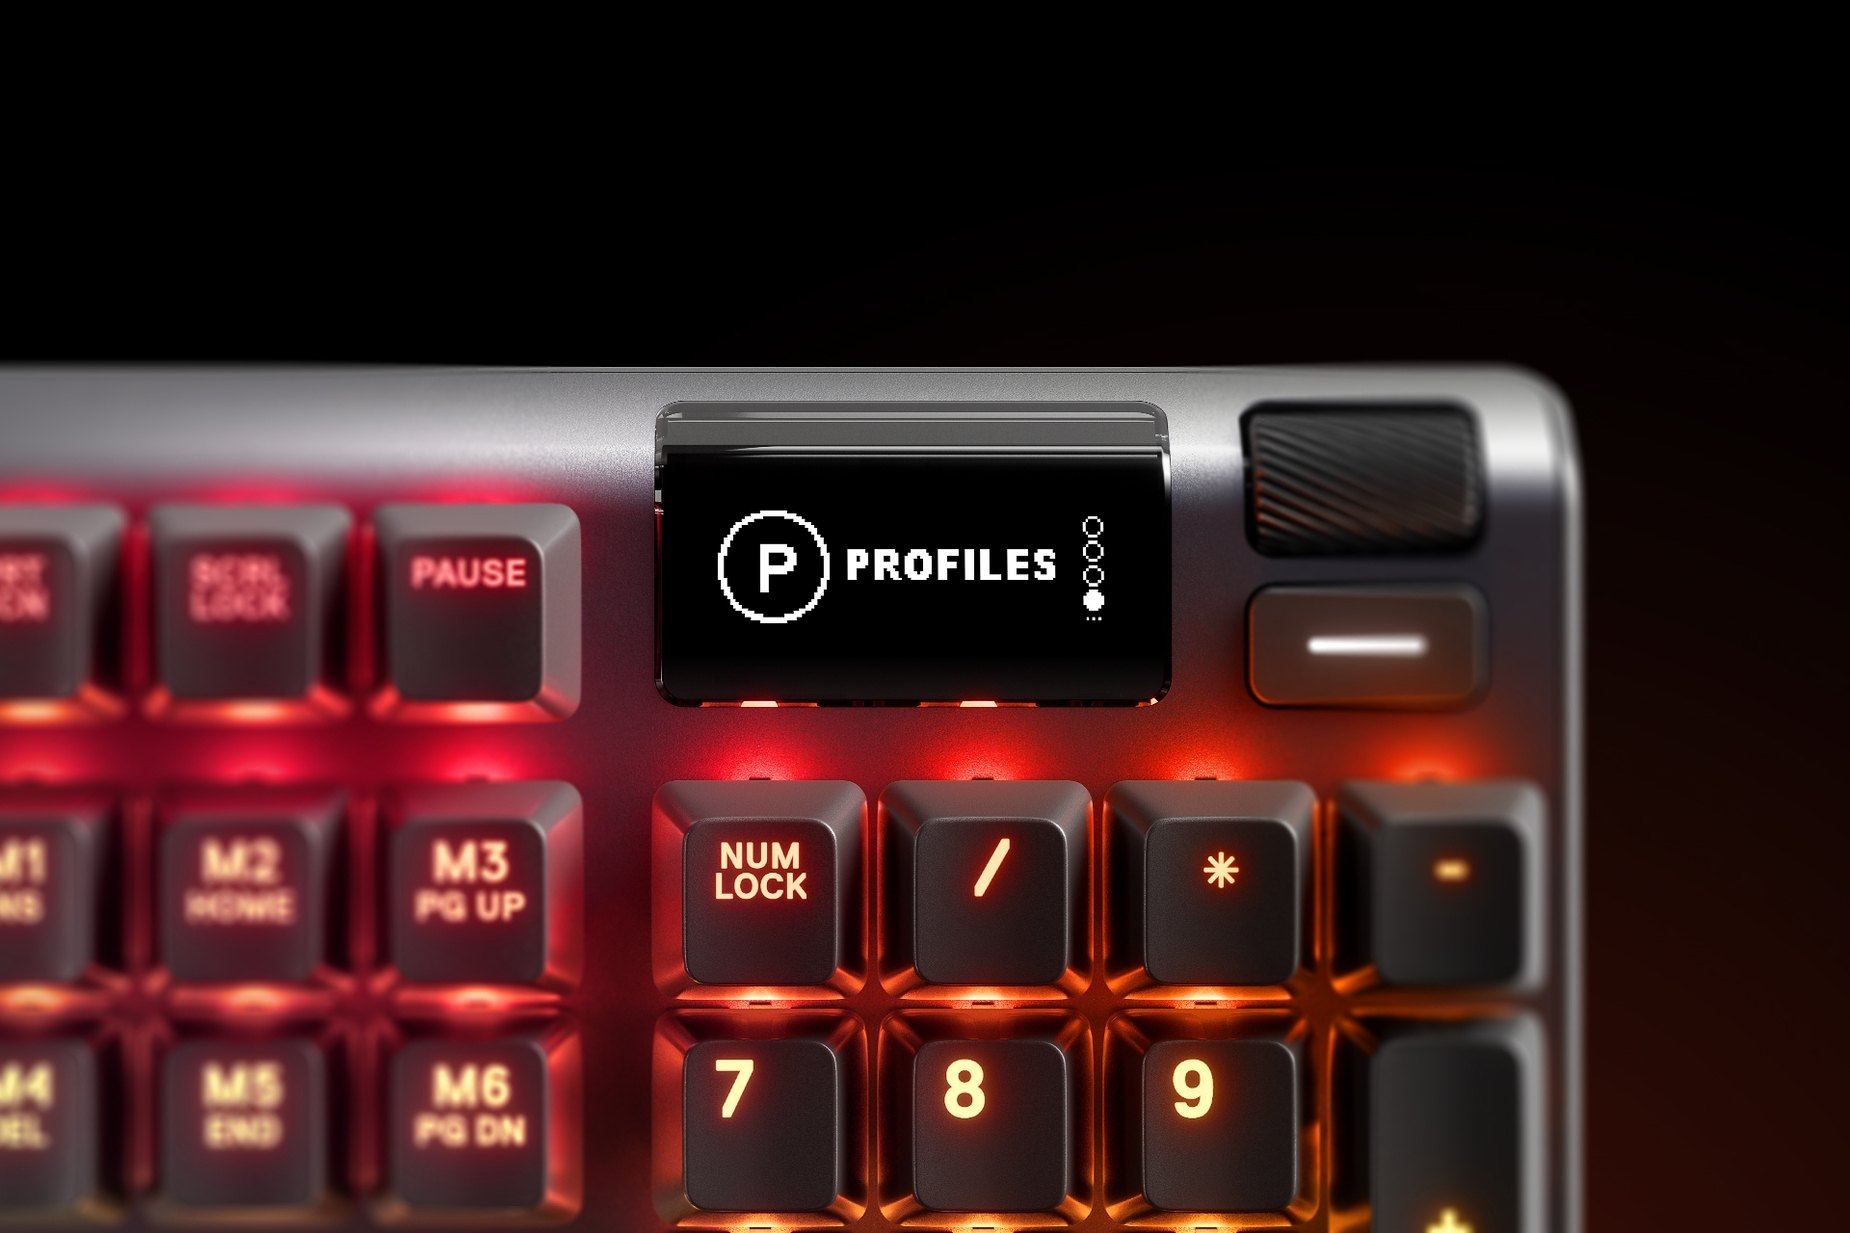 Zoomed in view of the multimedia and settings controls/volume roller on the Thai - APEX PRO gaming keyboard